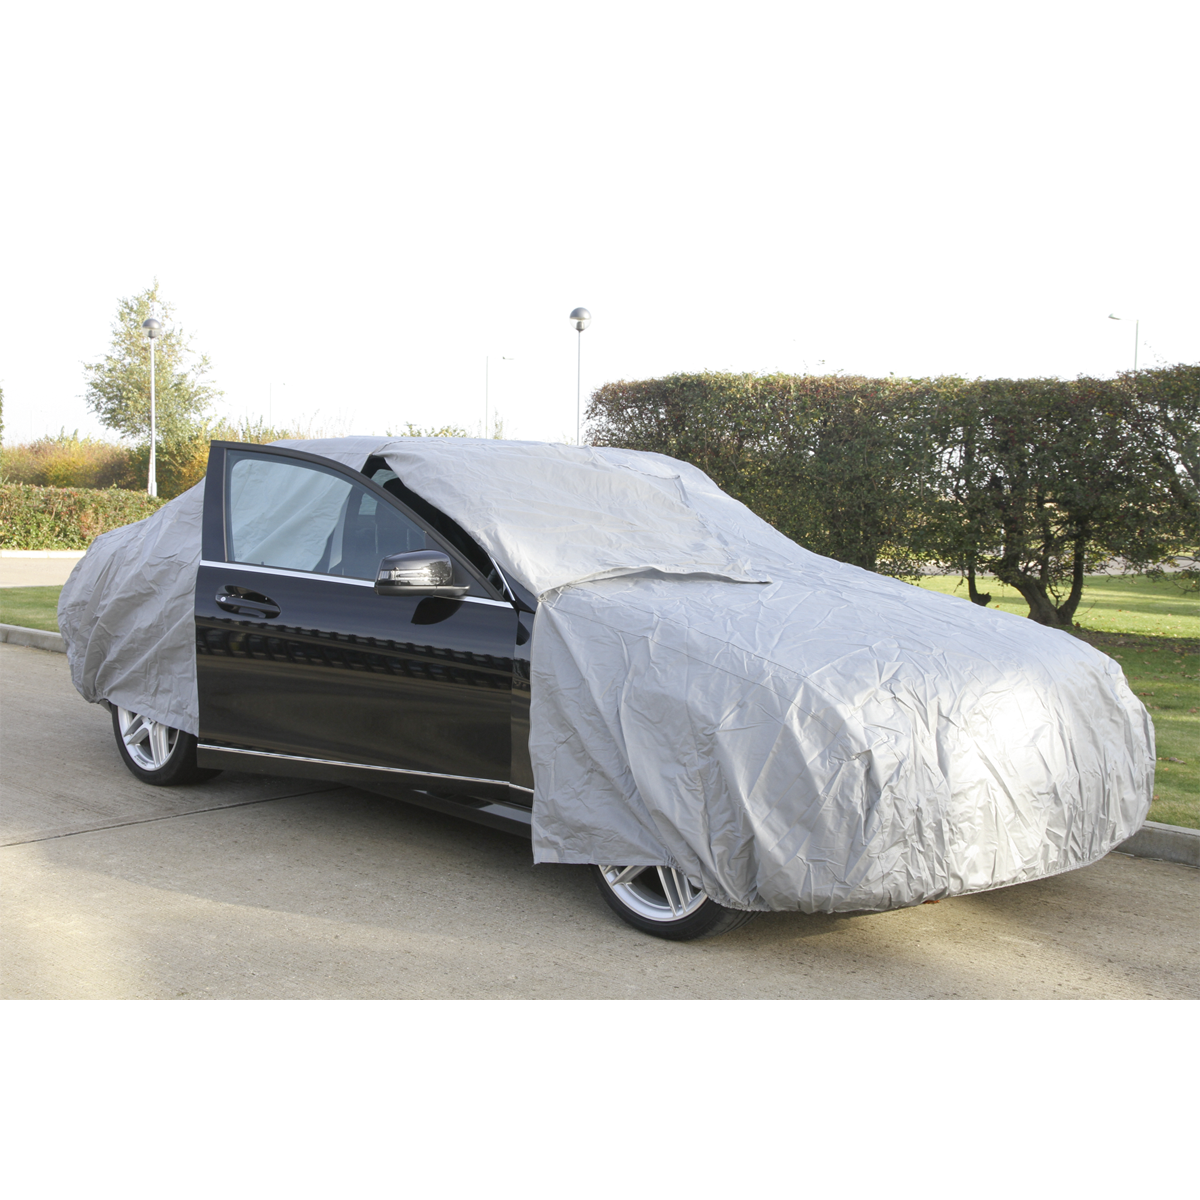 Car Cover Small 3800 x 1540 x 1190mm